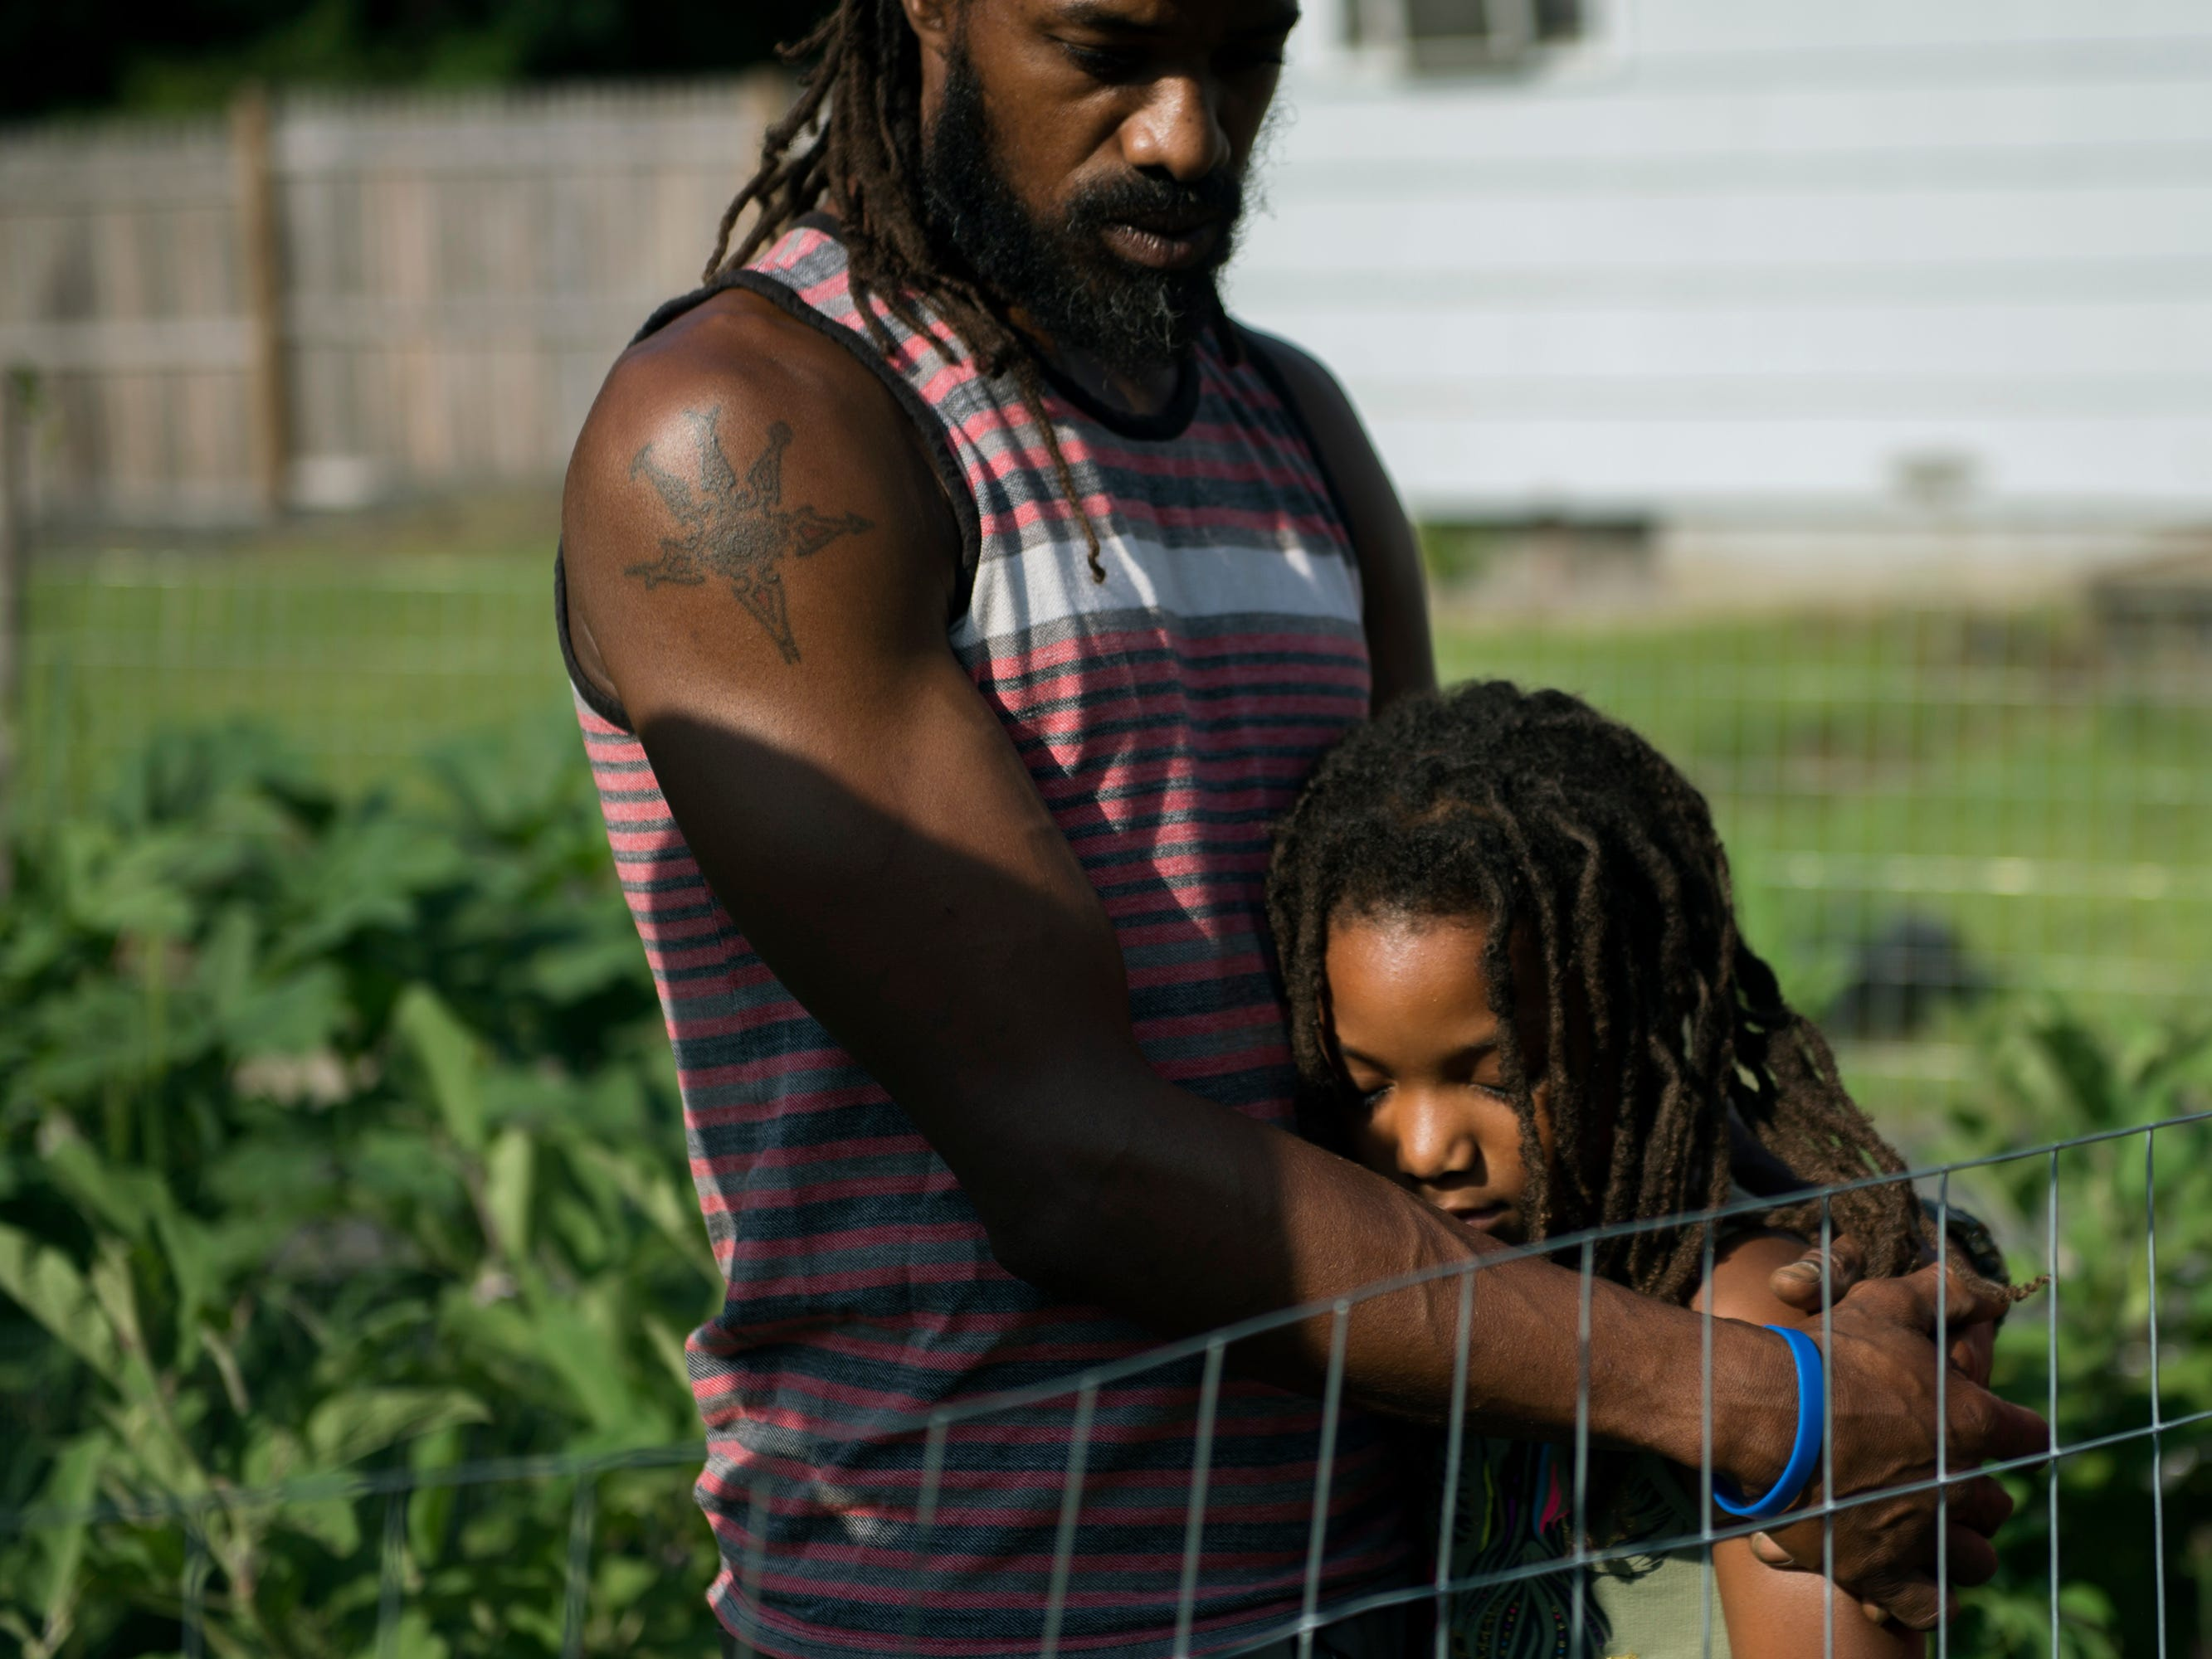 Micaiah Hall embraces his daughter Araminta, 7, on their family farm Thursday, Aug. 23, 2018 at Free Haven Farms in Lawnside, N.J.